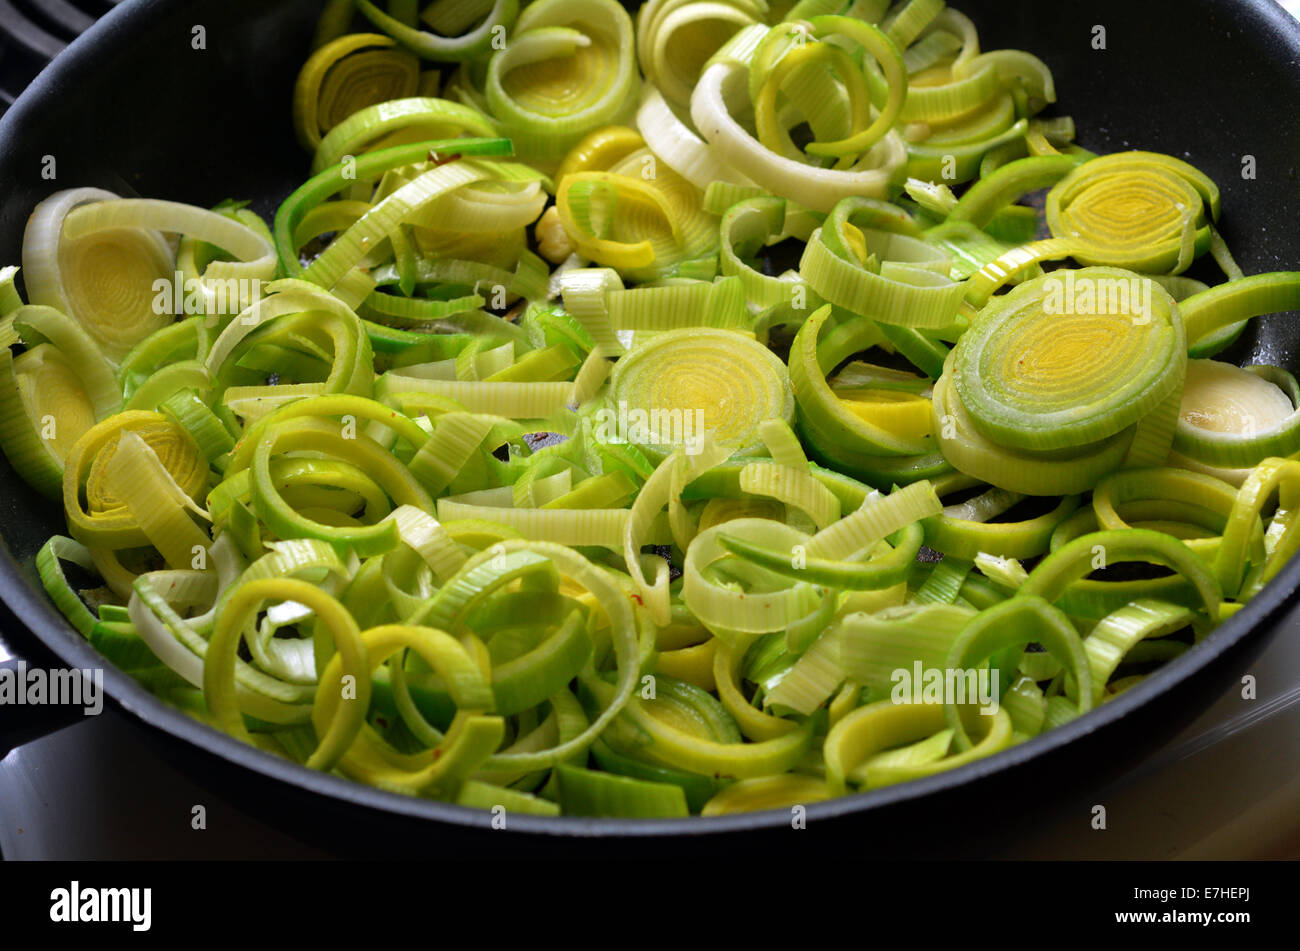 Closeup of fried leek vegetable in a pan during home cooking. - Stock Image